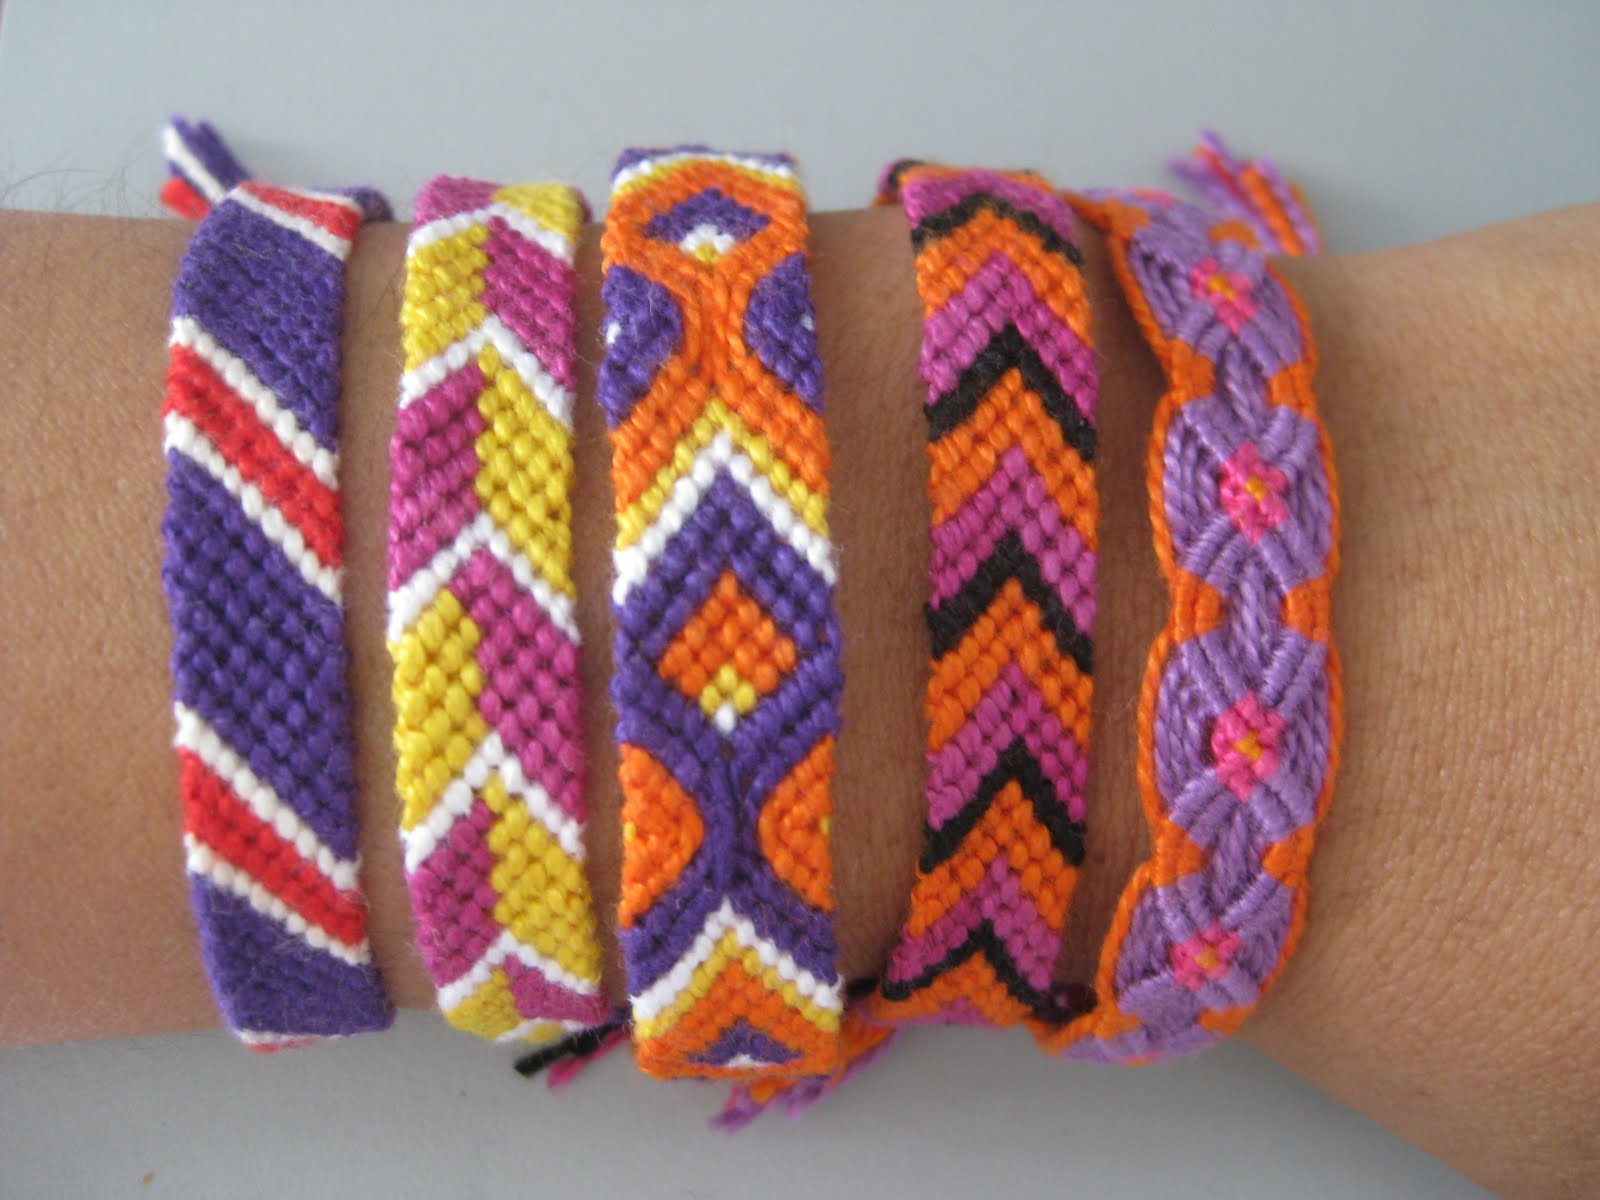 cool bracelets to make with string